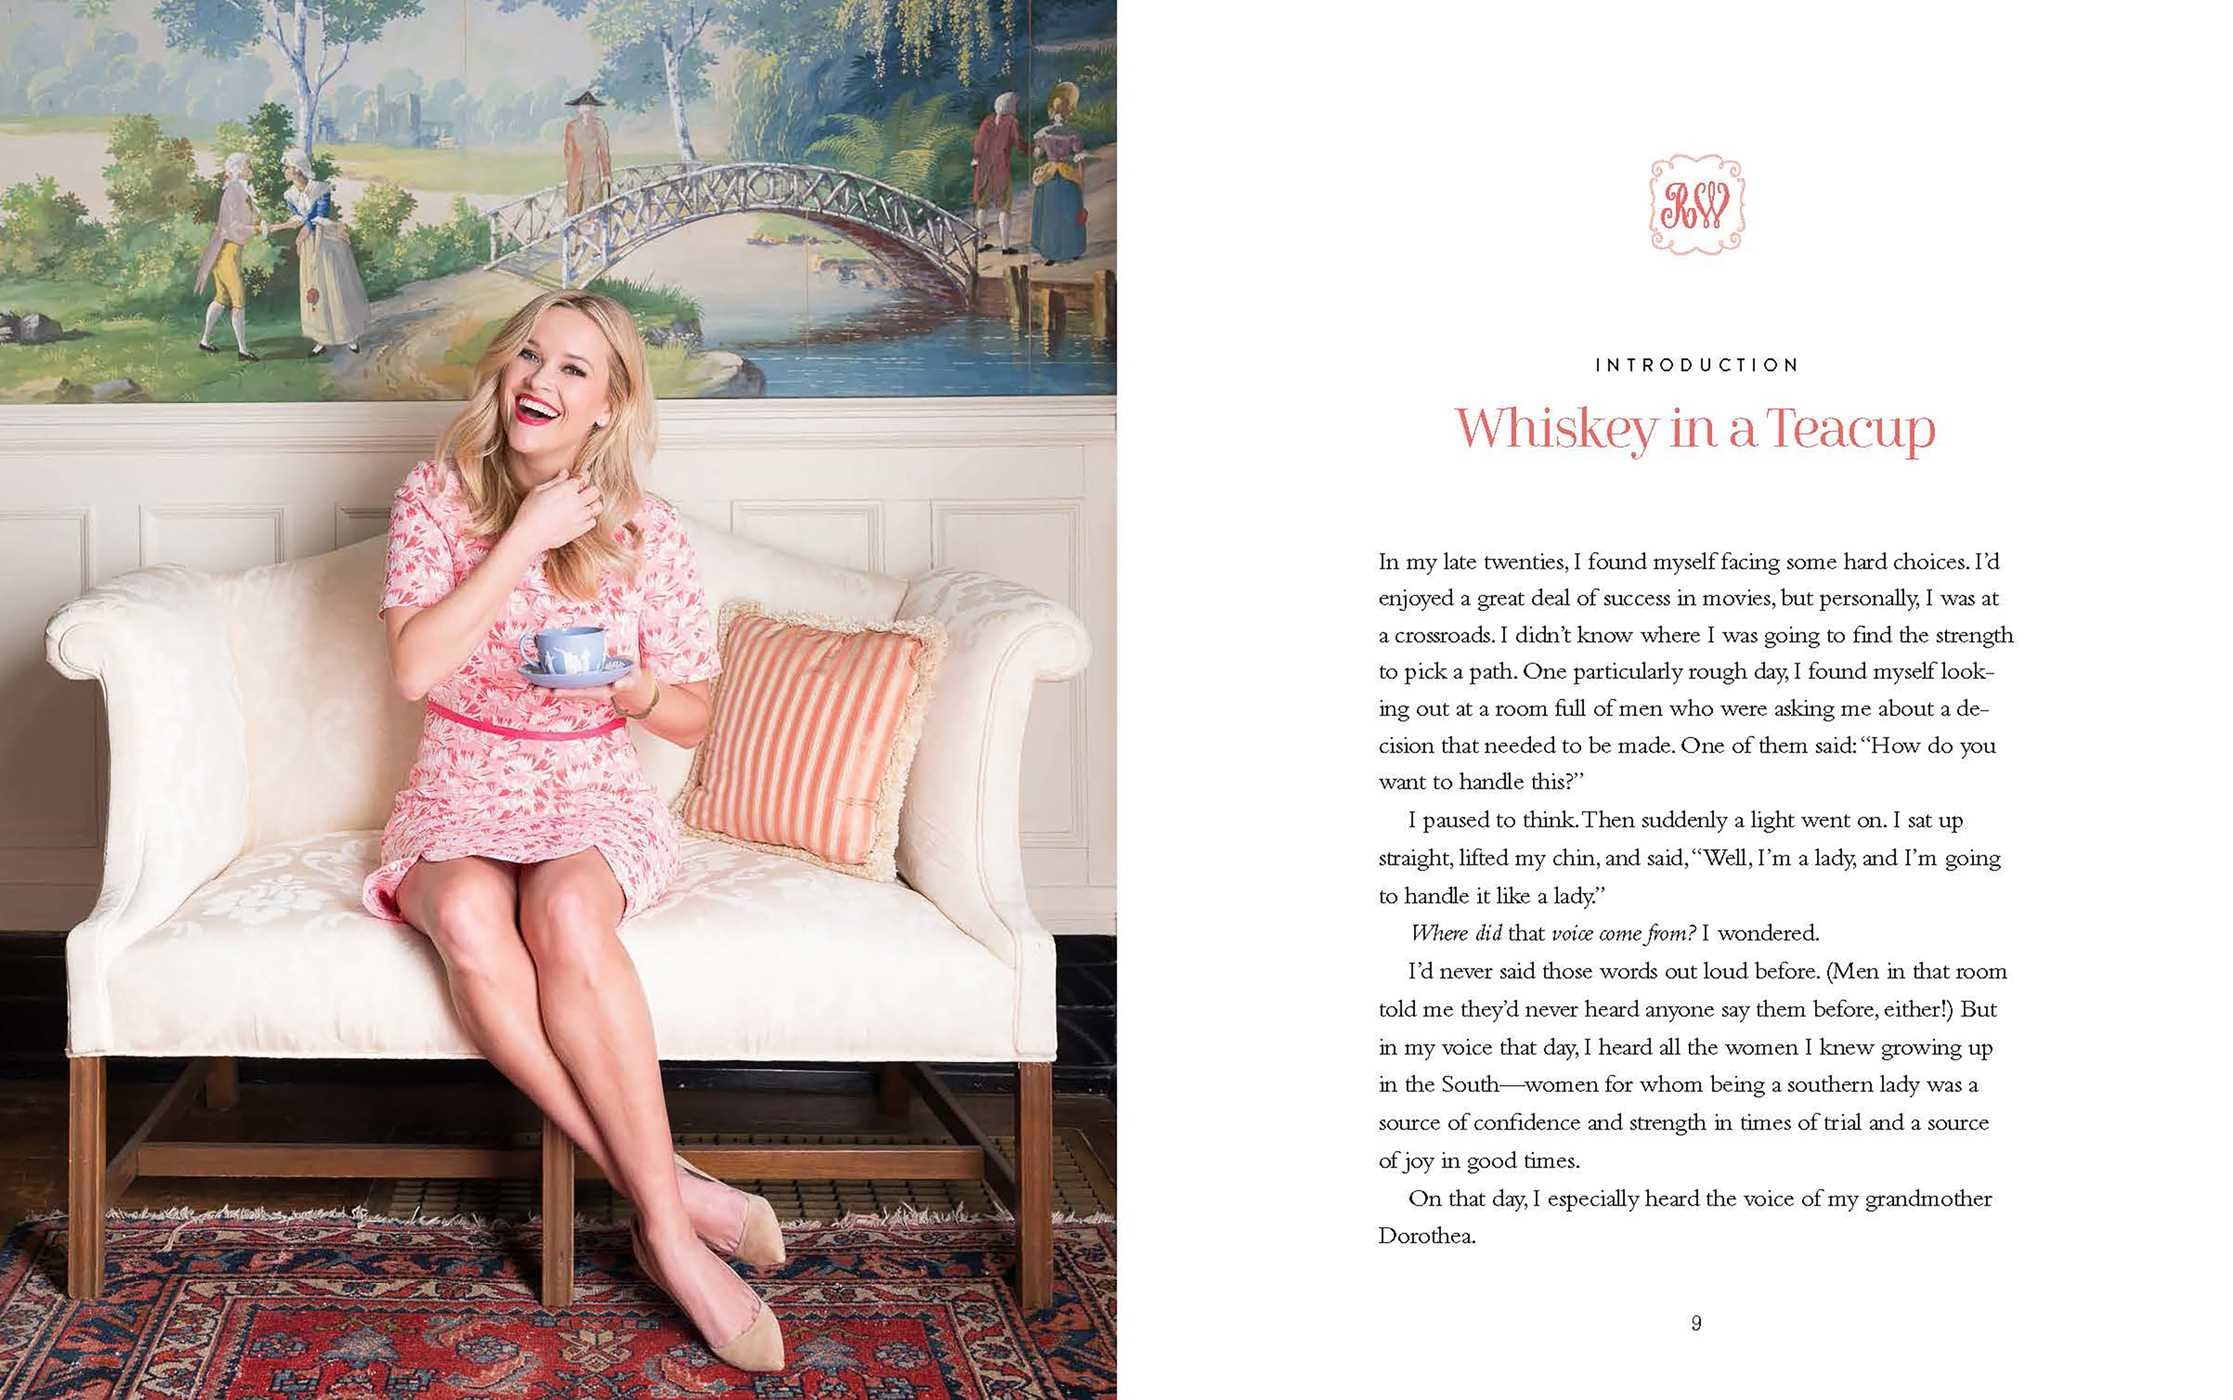 Whiskey in a teacup 9781501166273.in01